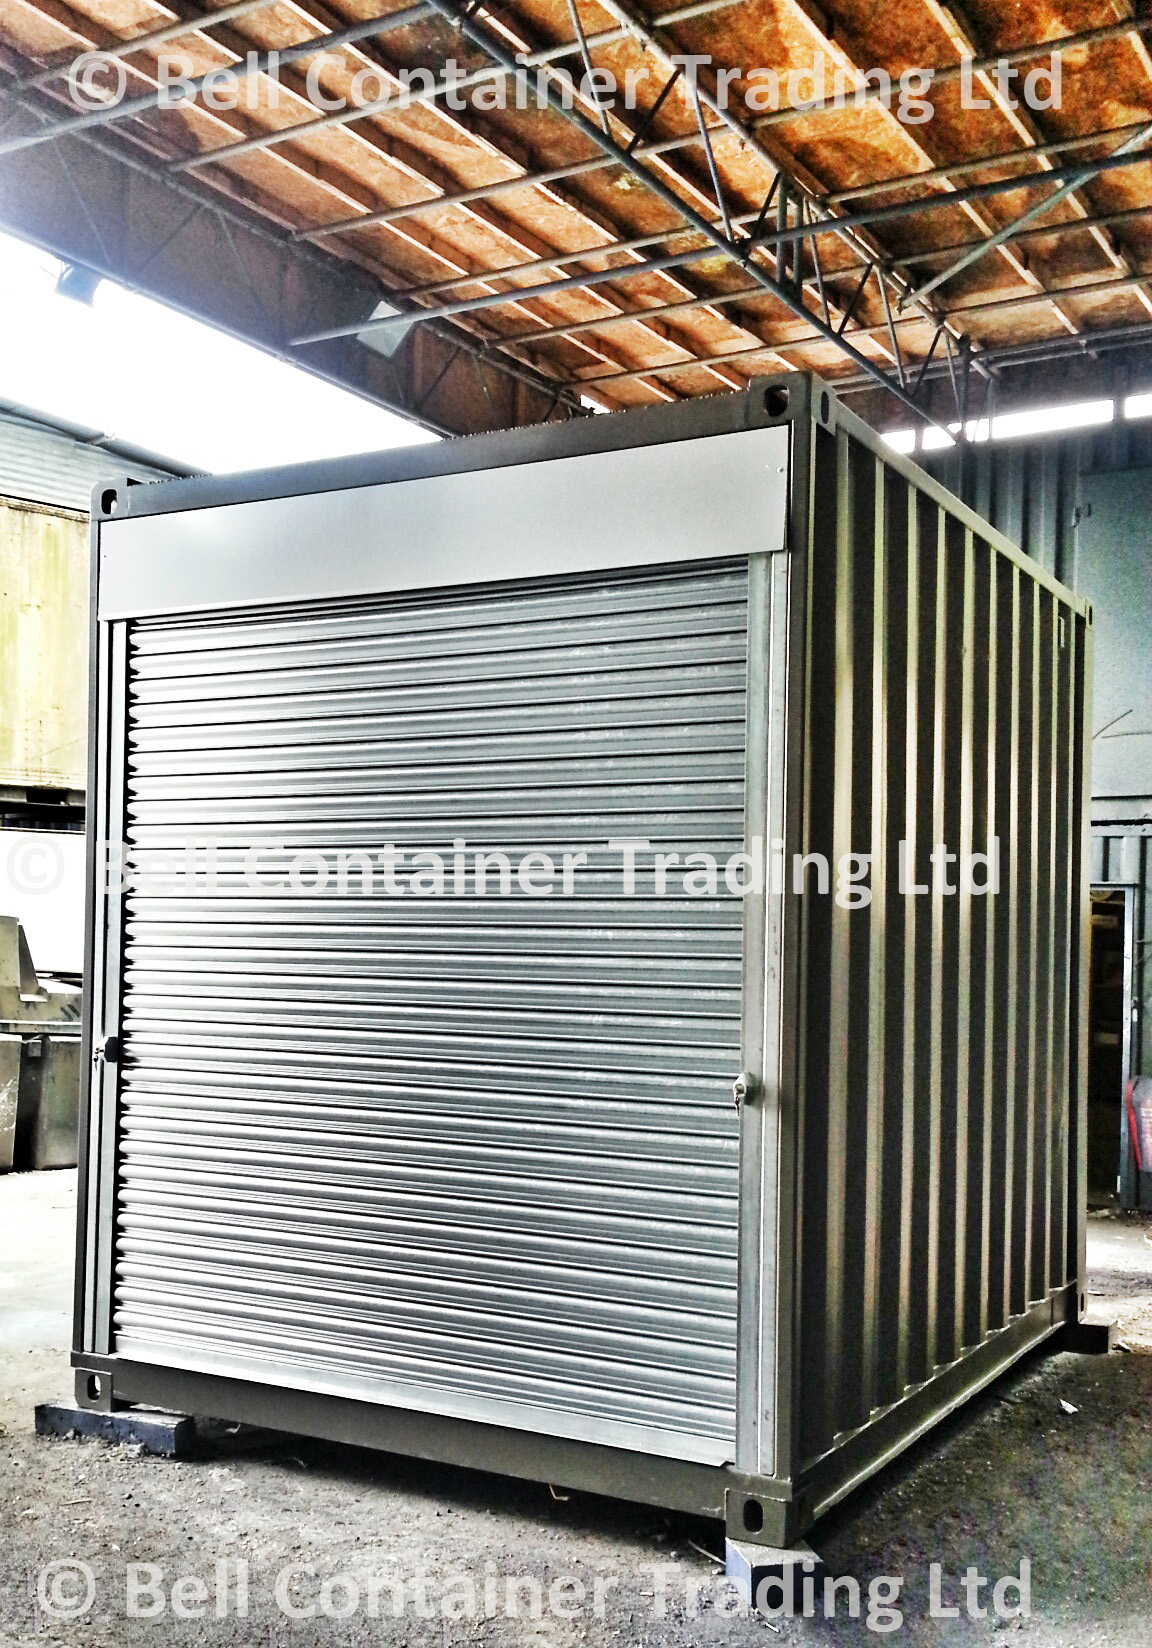 pop up storage solutions with Shipping Container Market Stalls on 123d moreover 123d further 12d furthermore 12d moreover Double Sided Rollup Stand.